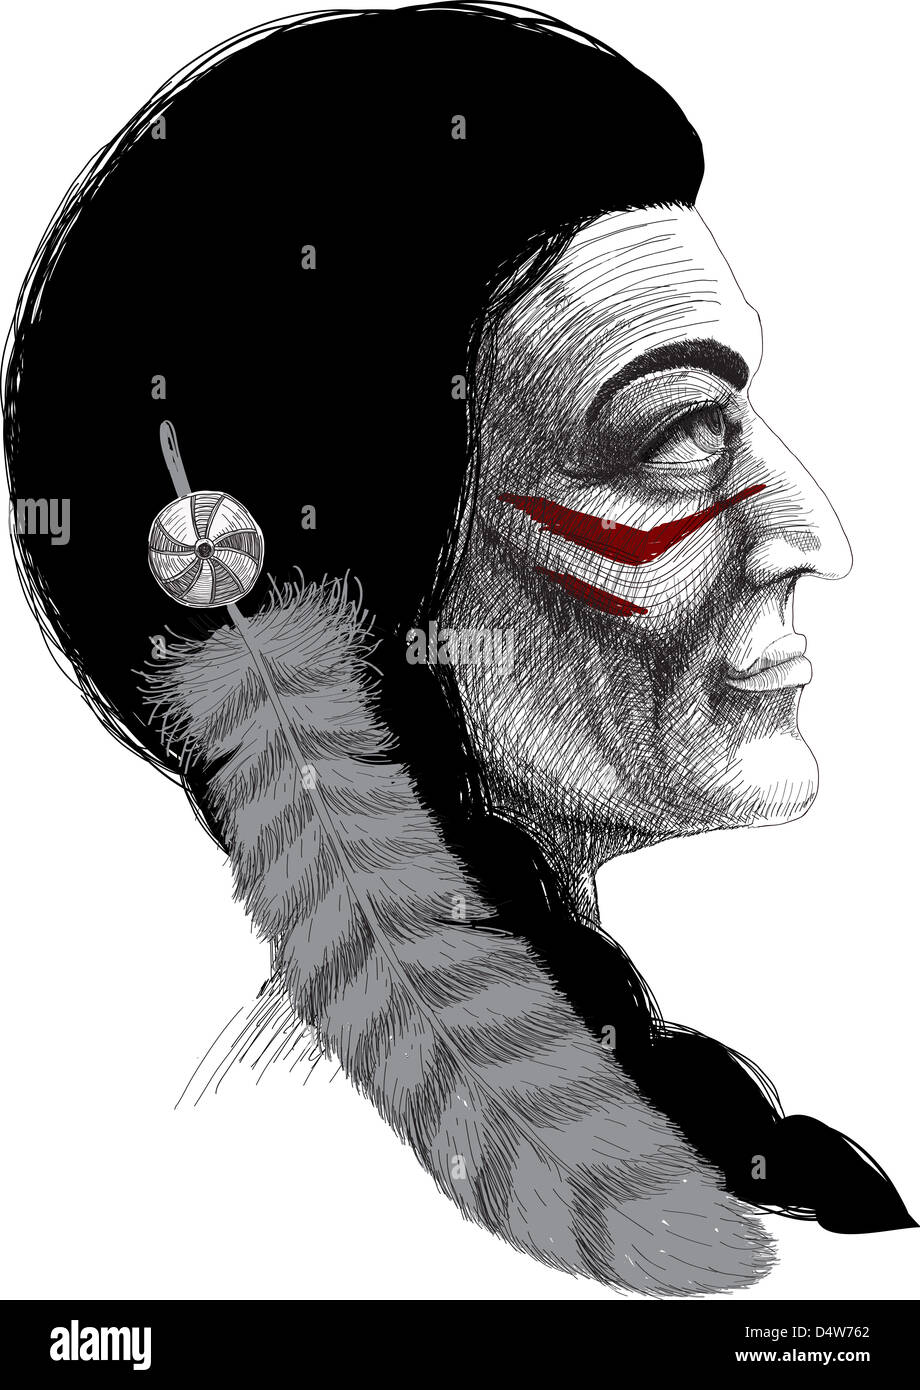 illustrations north men culture tribal people - Stock Image